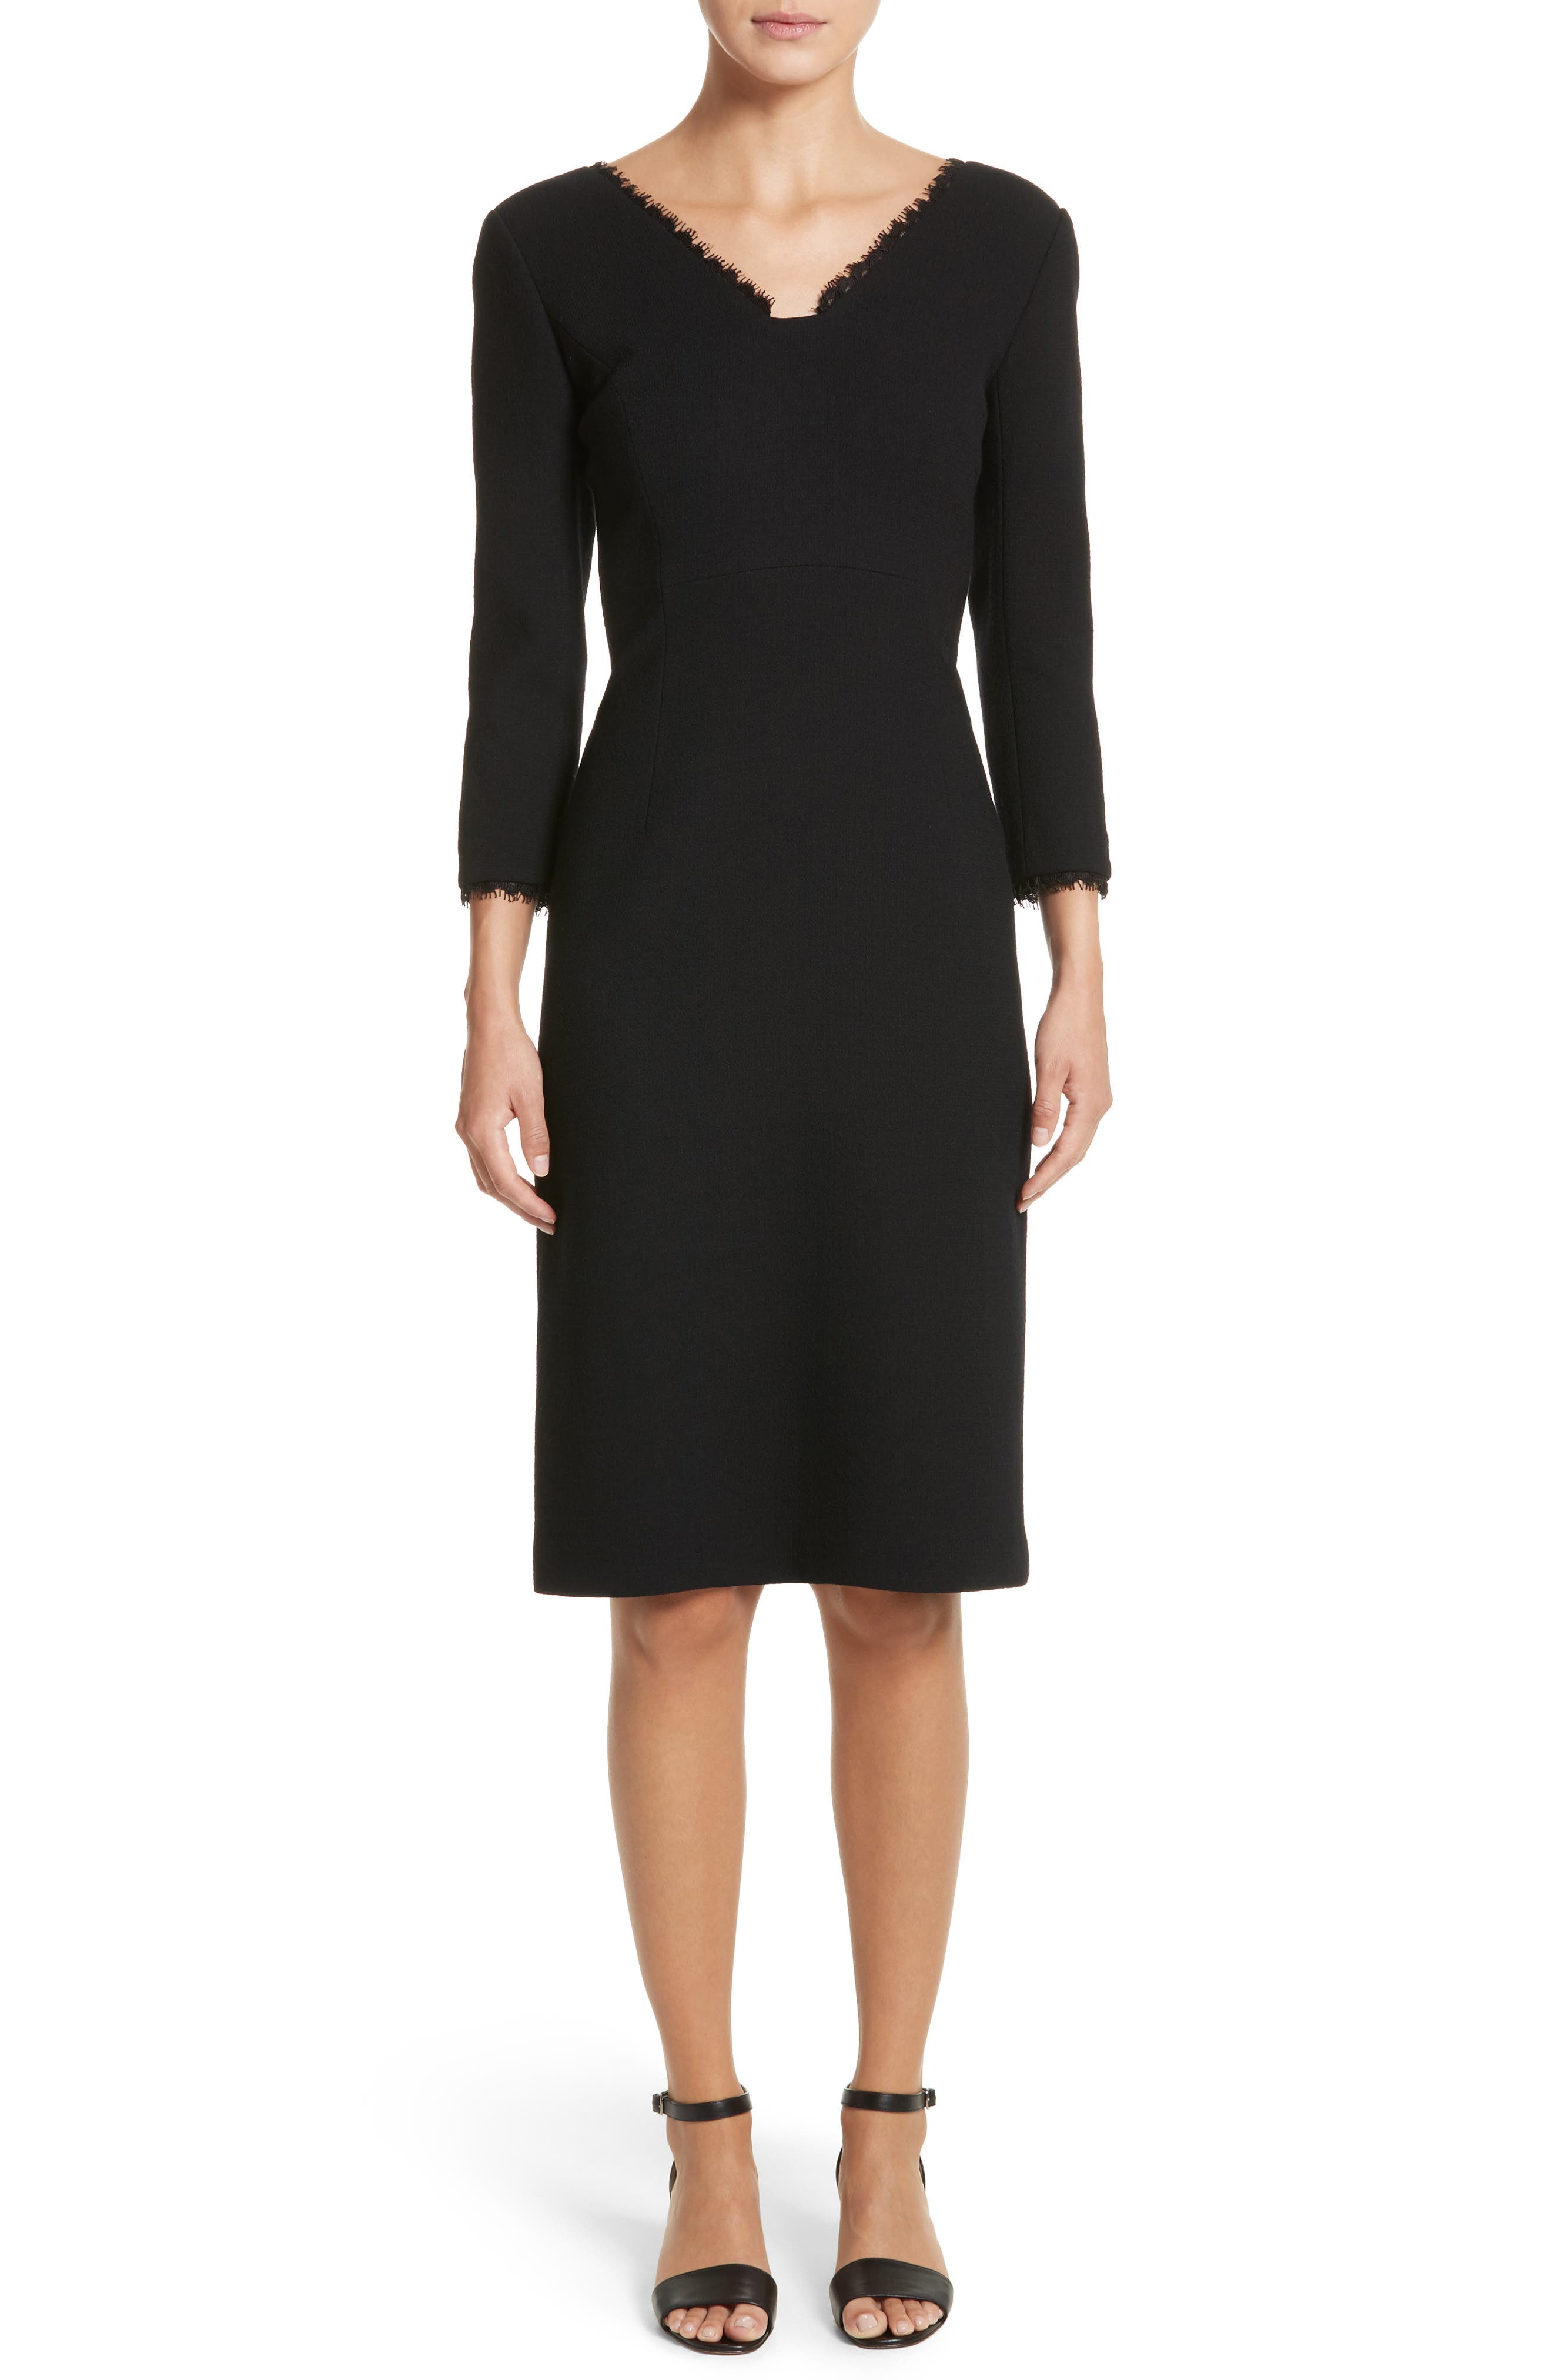 Shandy Lace Trim Wool Dress,                             Main thumbnail 1, color,                             001